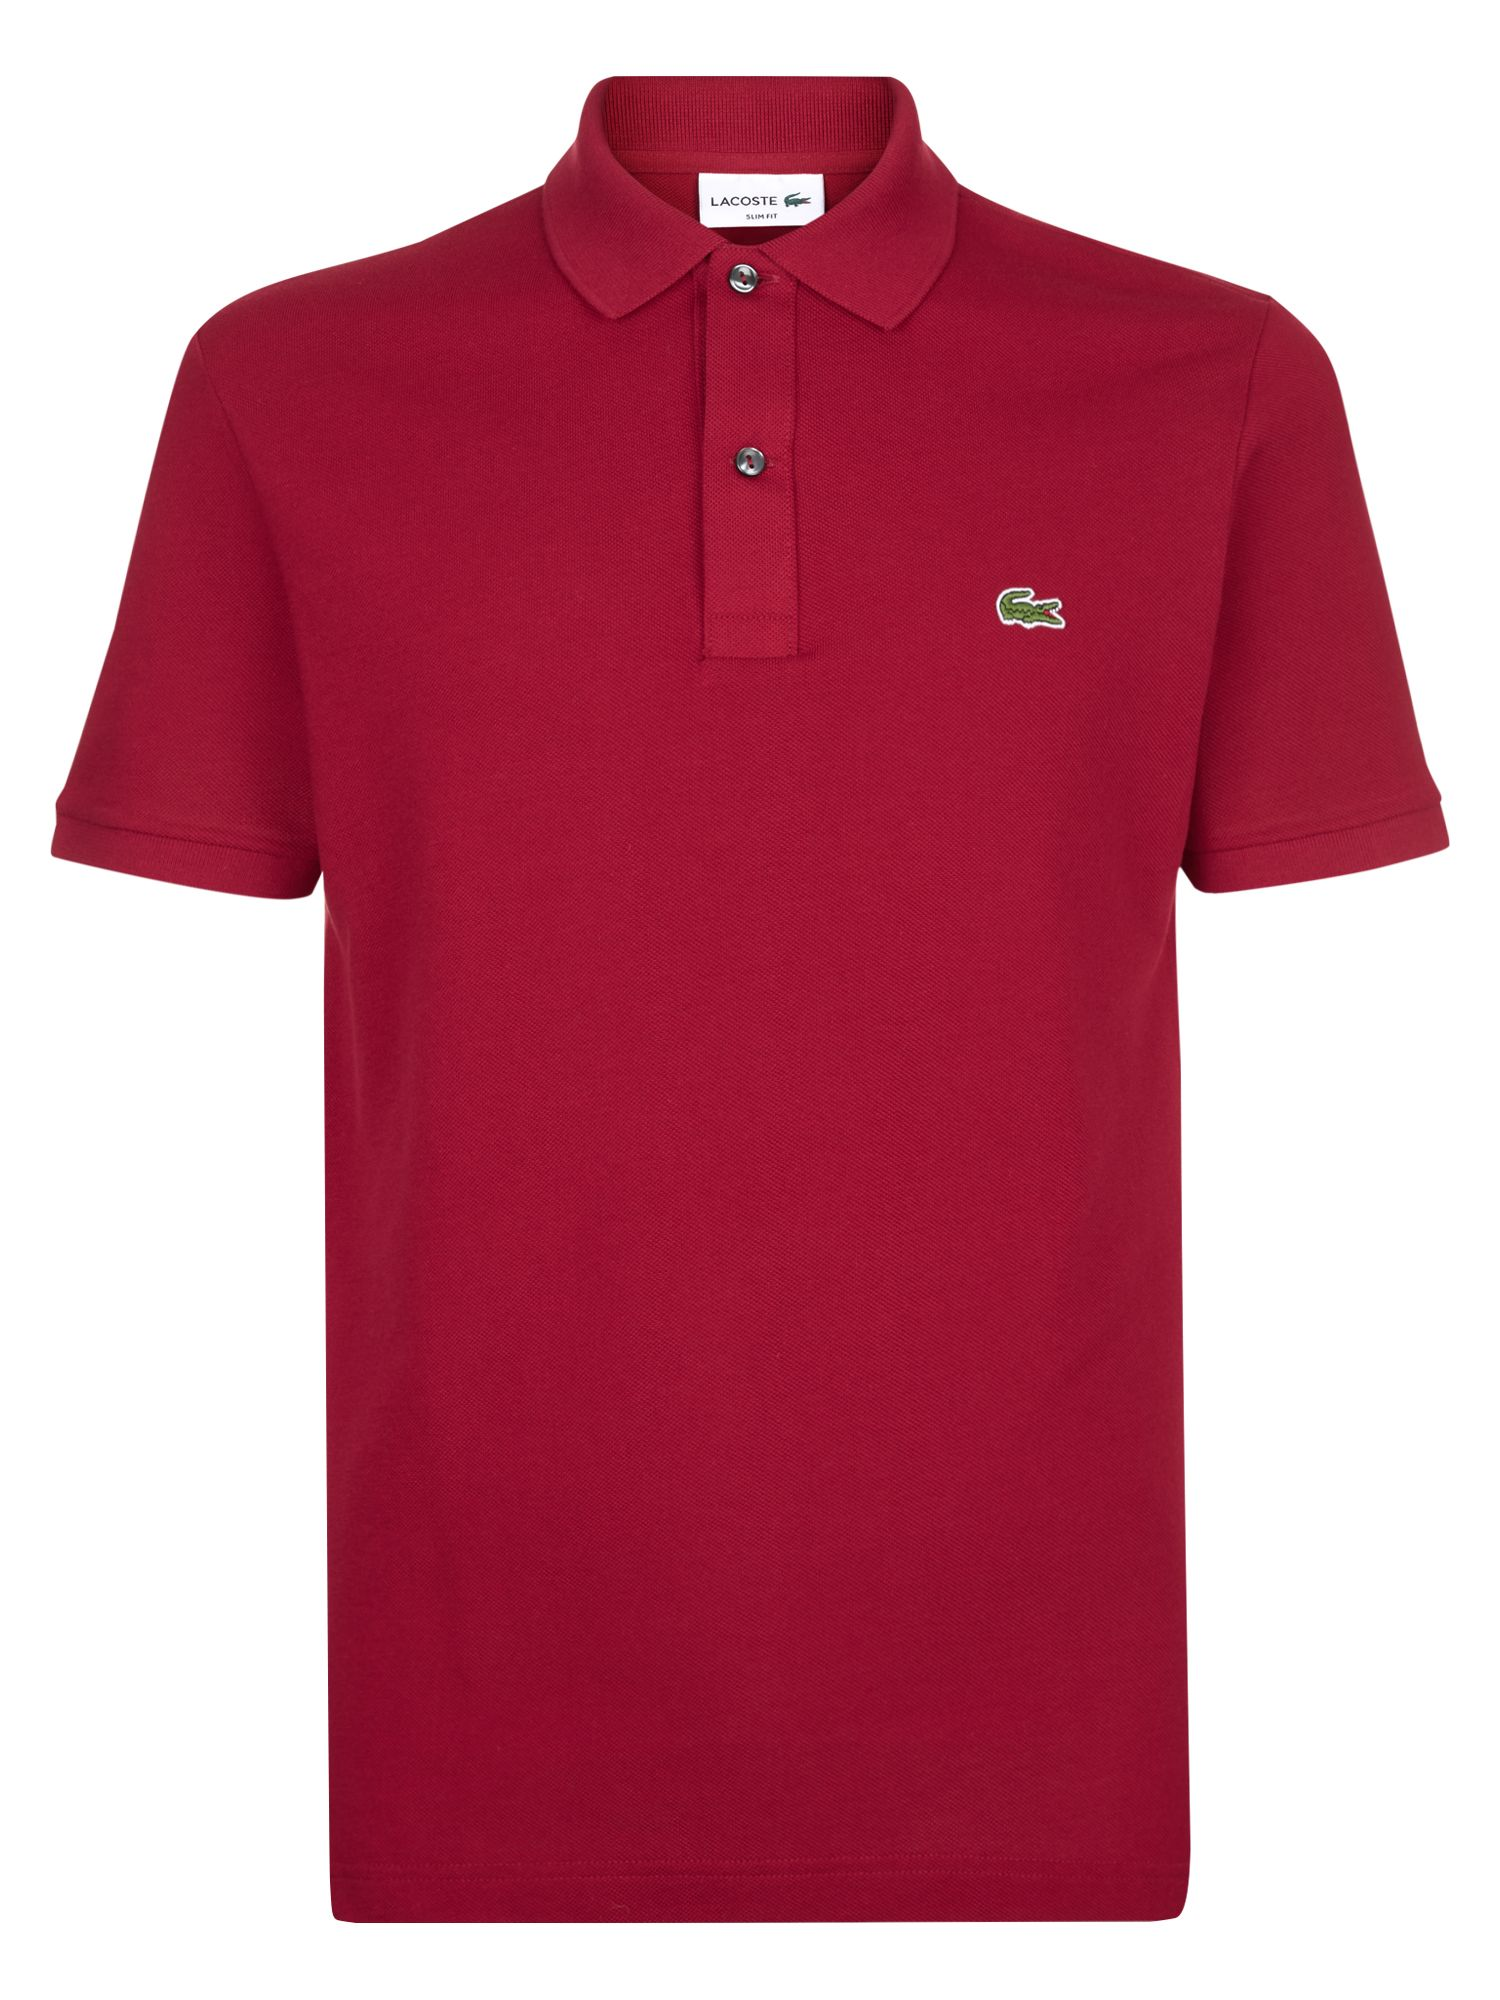 Men's Lacoste Slim Fit Polo in Pique, Red